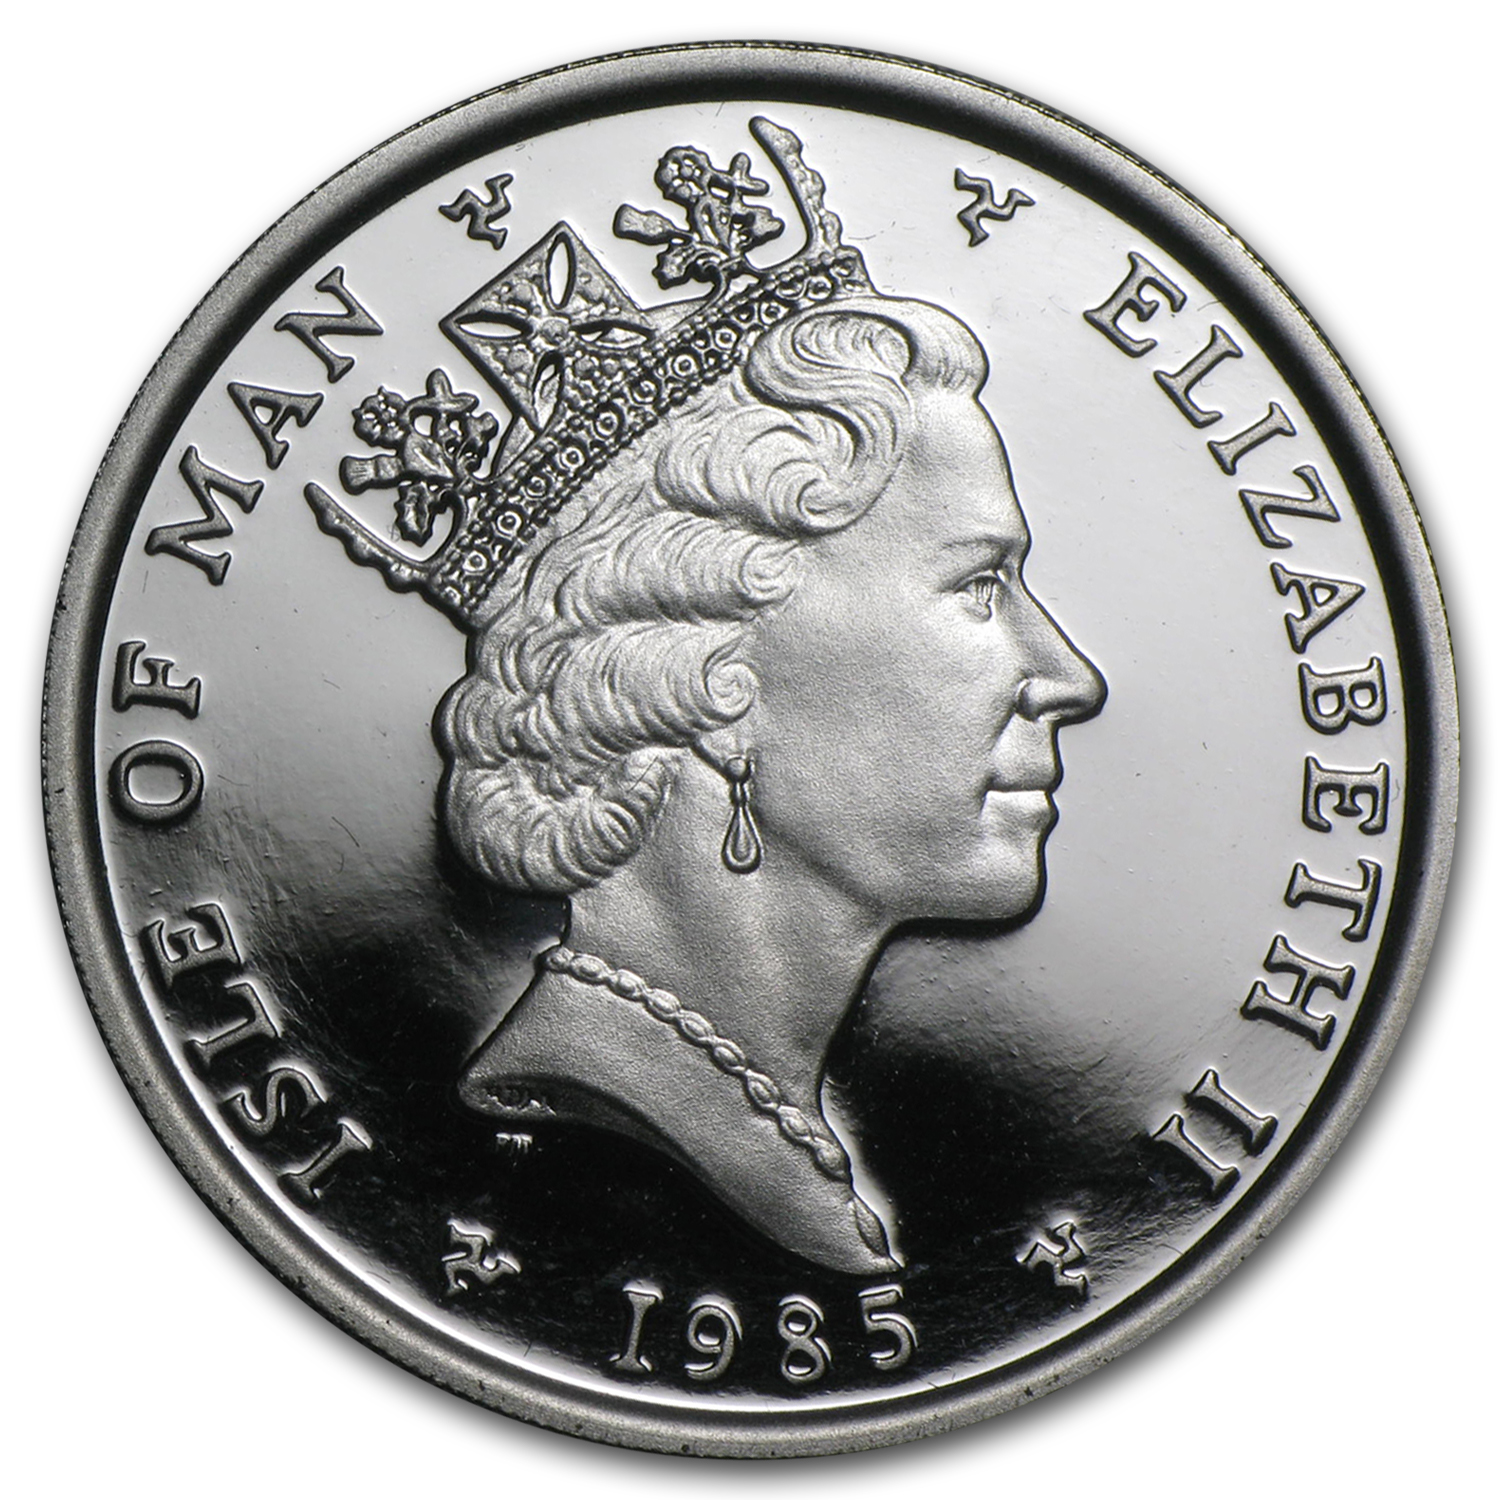 1985 1 oz Isle of Man Platinum Noble (Brilliant Uncirculated)